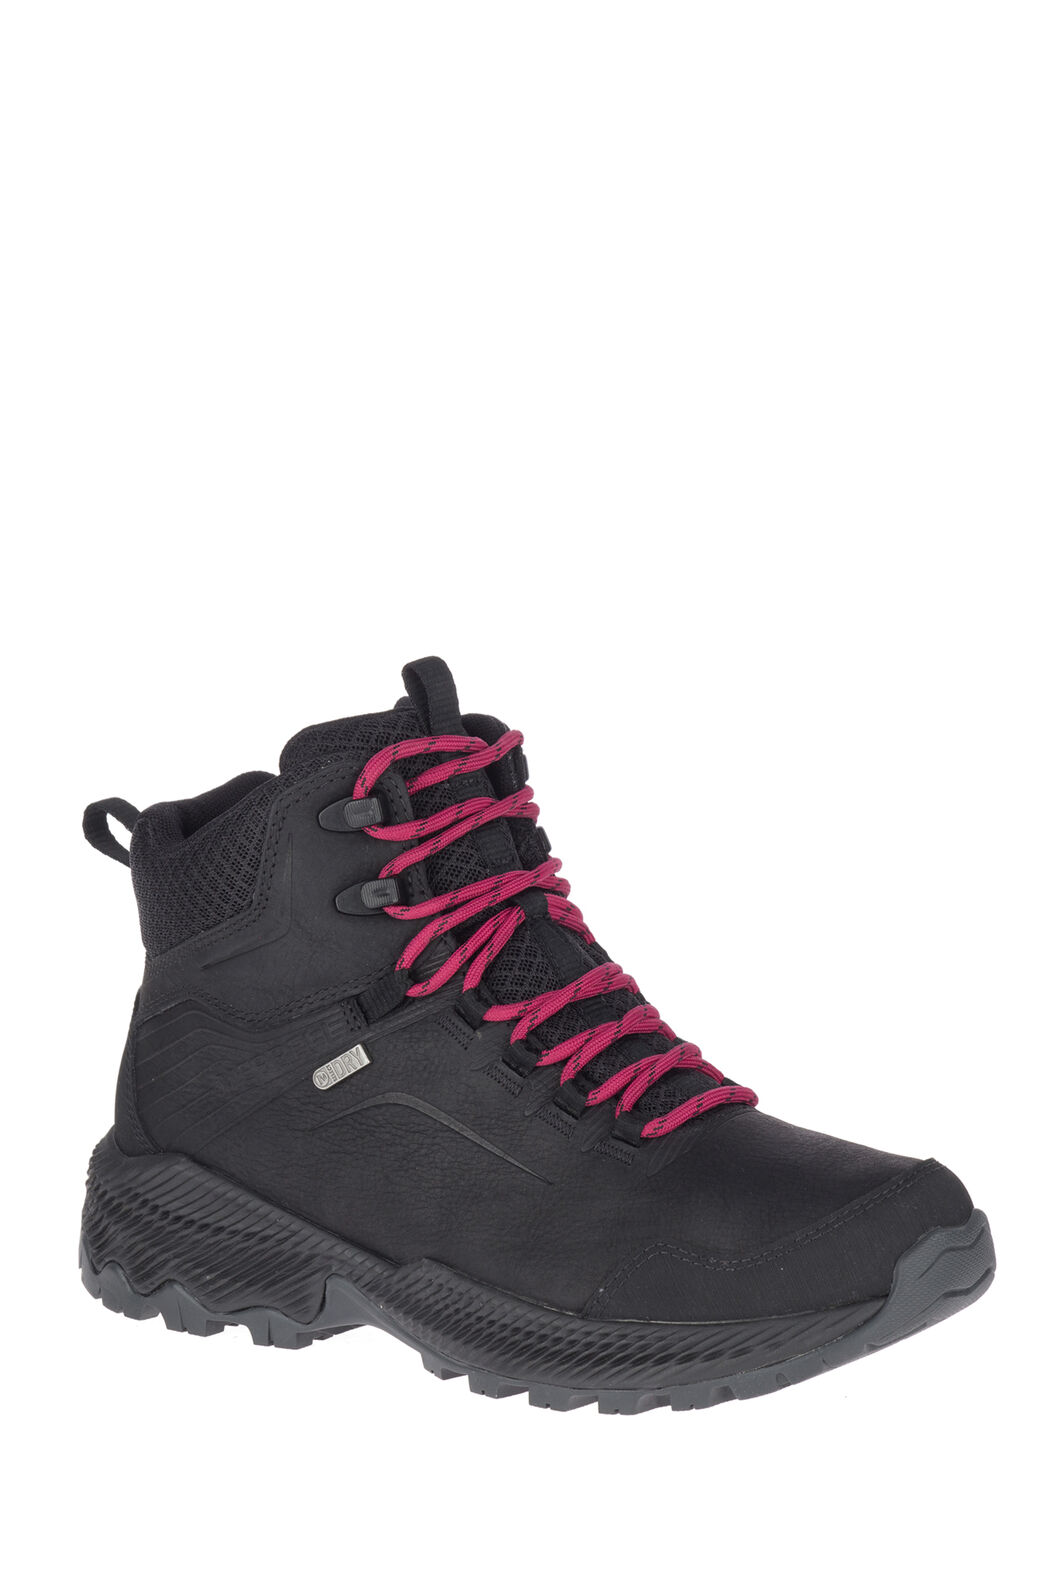 Merrell Forestbound Mid WP Boots — Women's, Black, hi-res